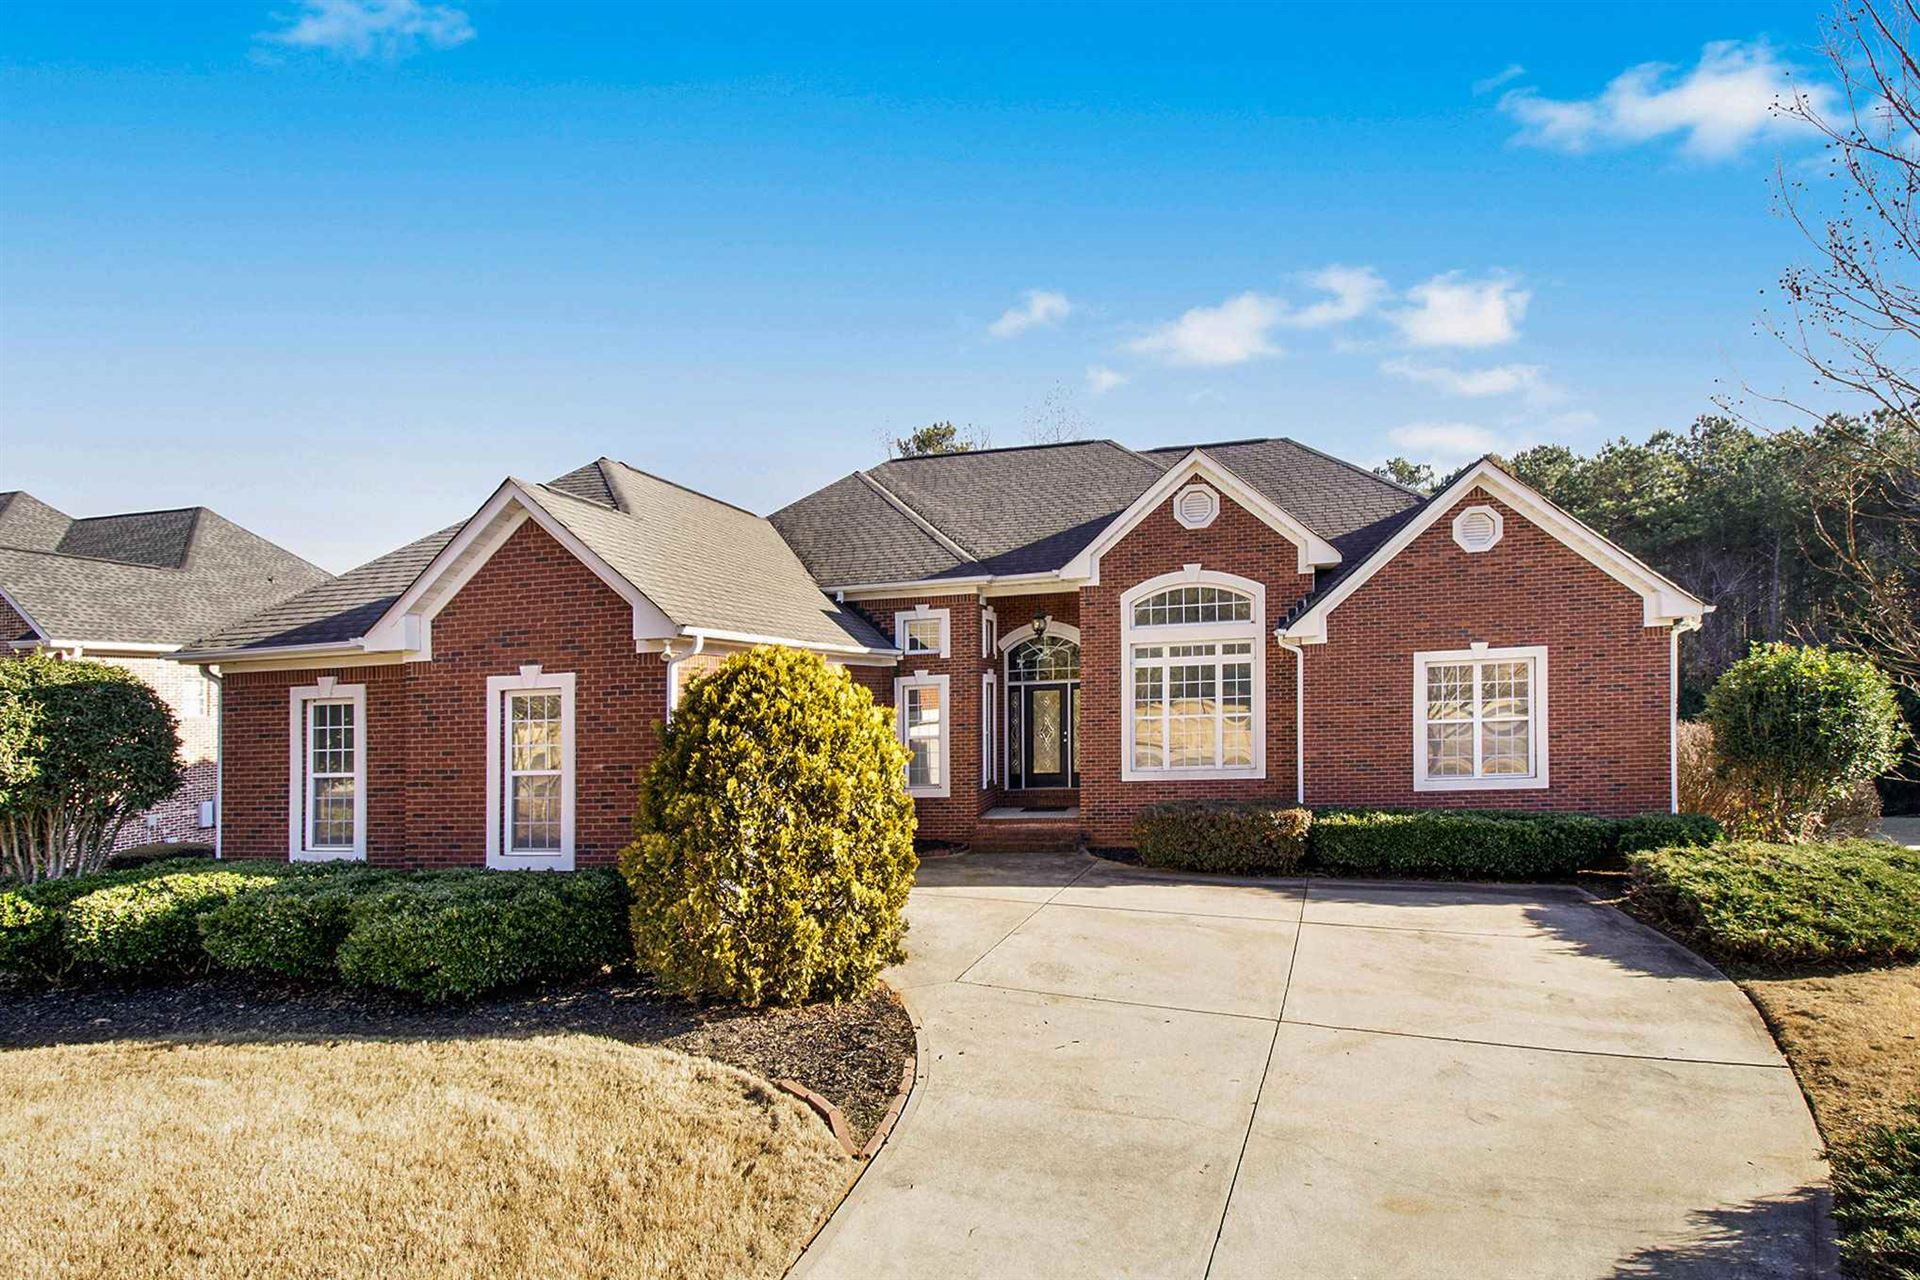 1050 Eagles Brooke Dr, Locust Grove, GA 30248 - MLS#: 8909032